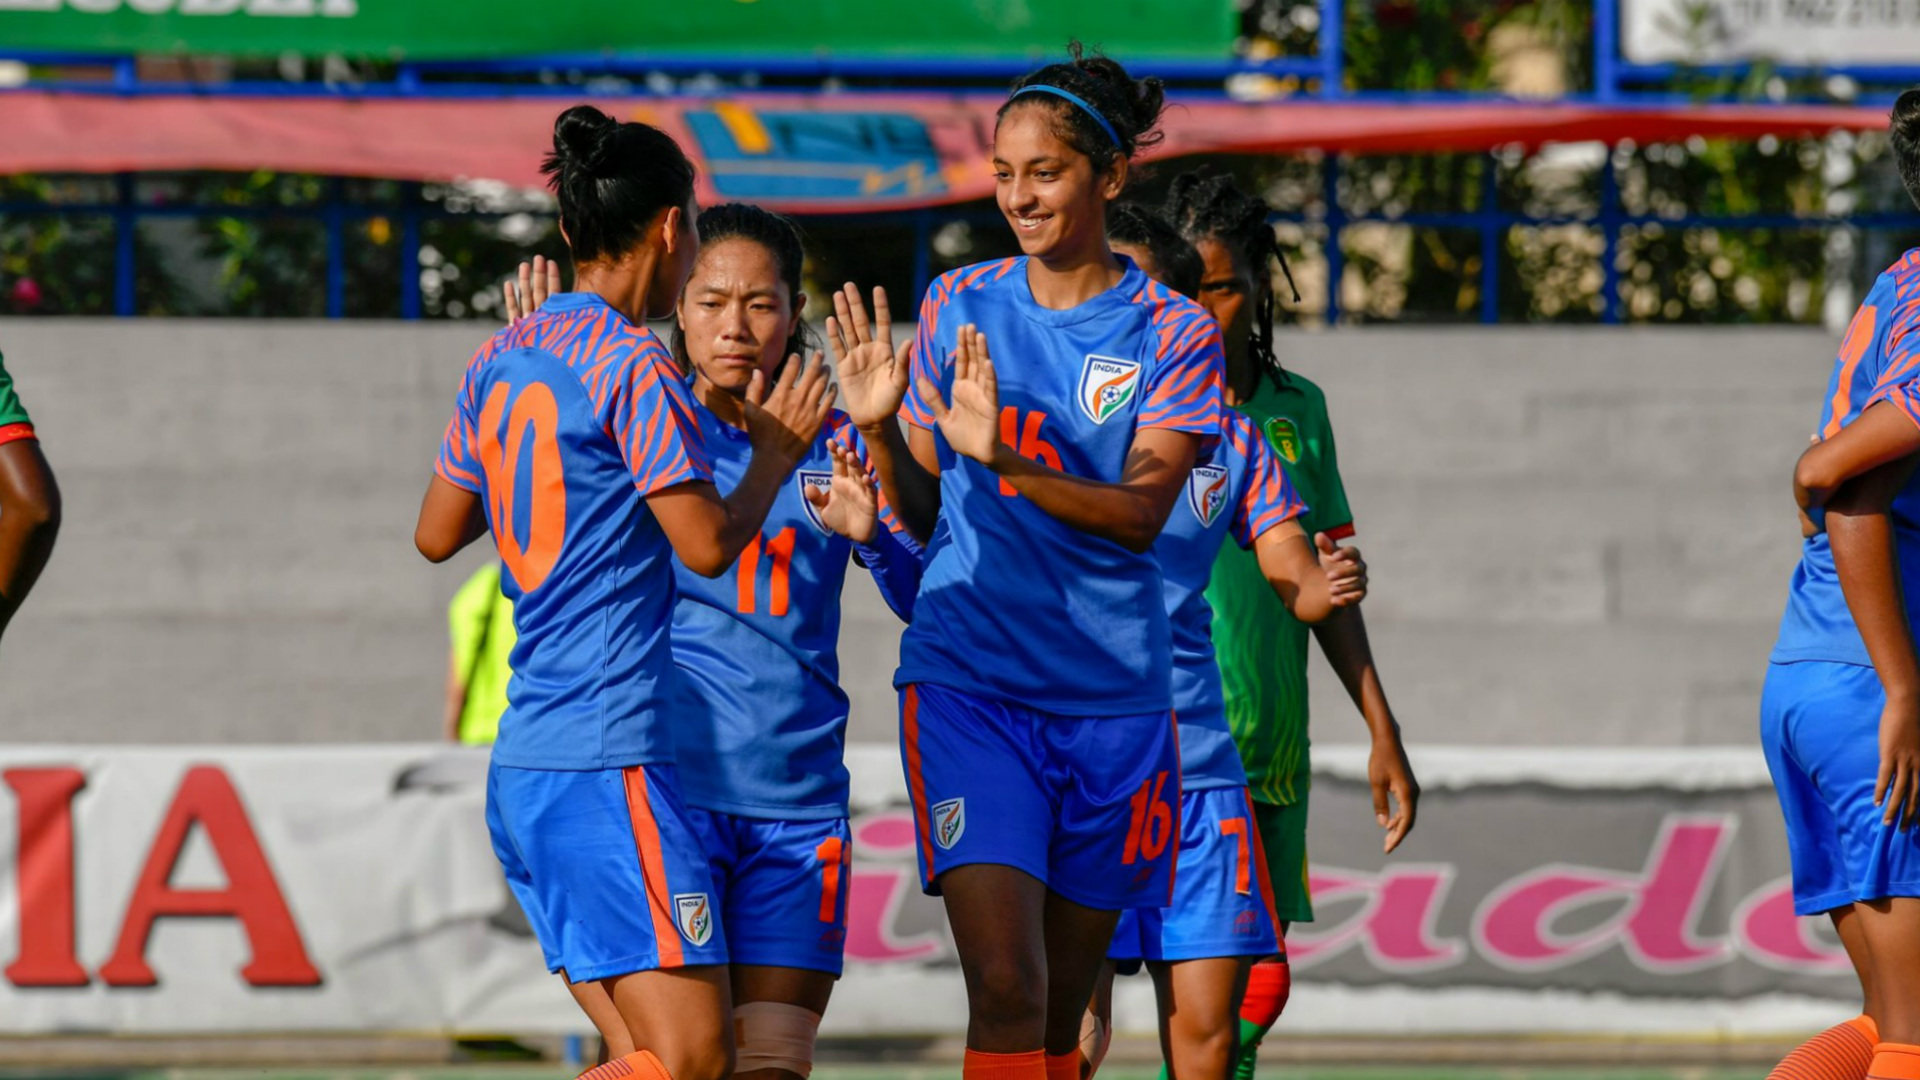 Indian Women's football quiz: Test your knowledge with our 'Sharp Minds' challenge!